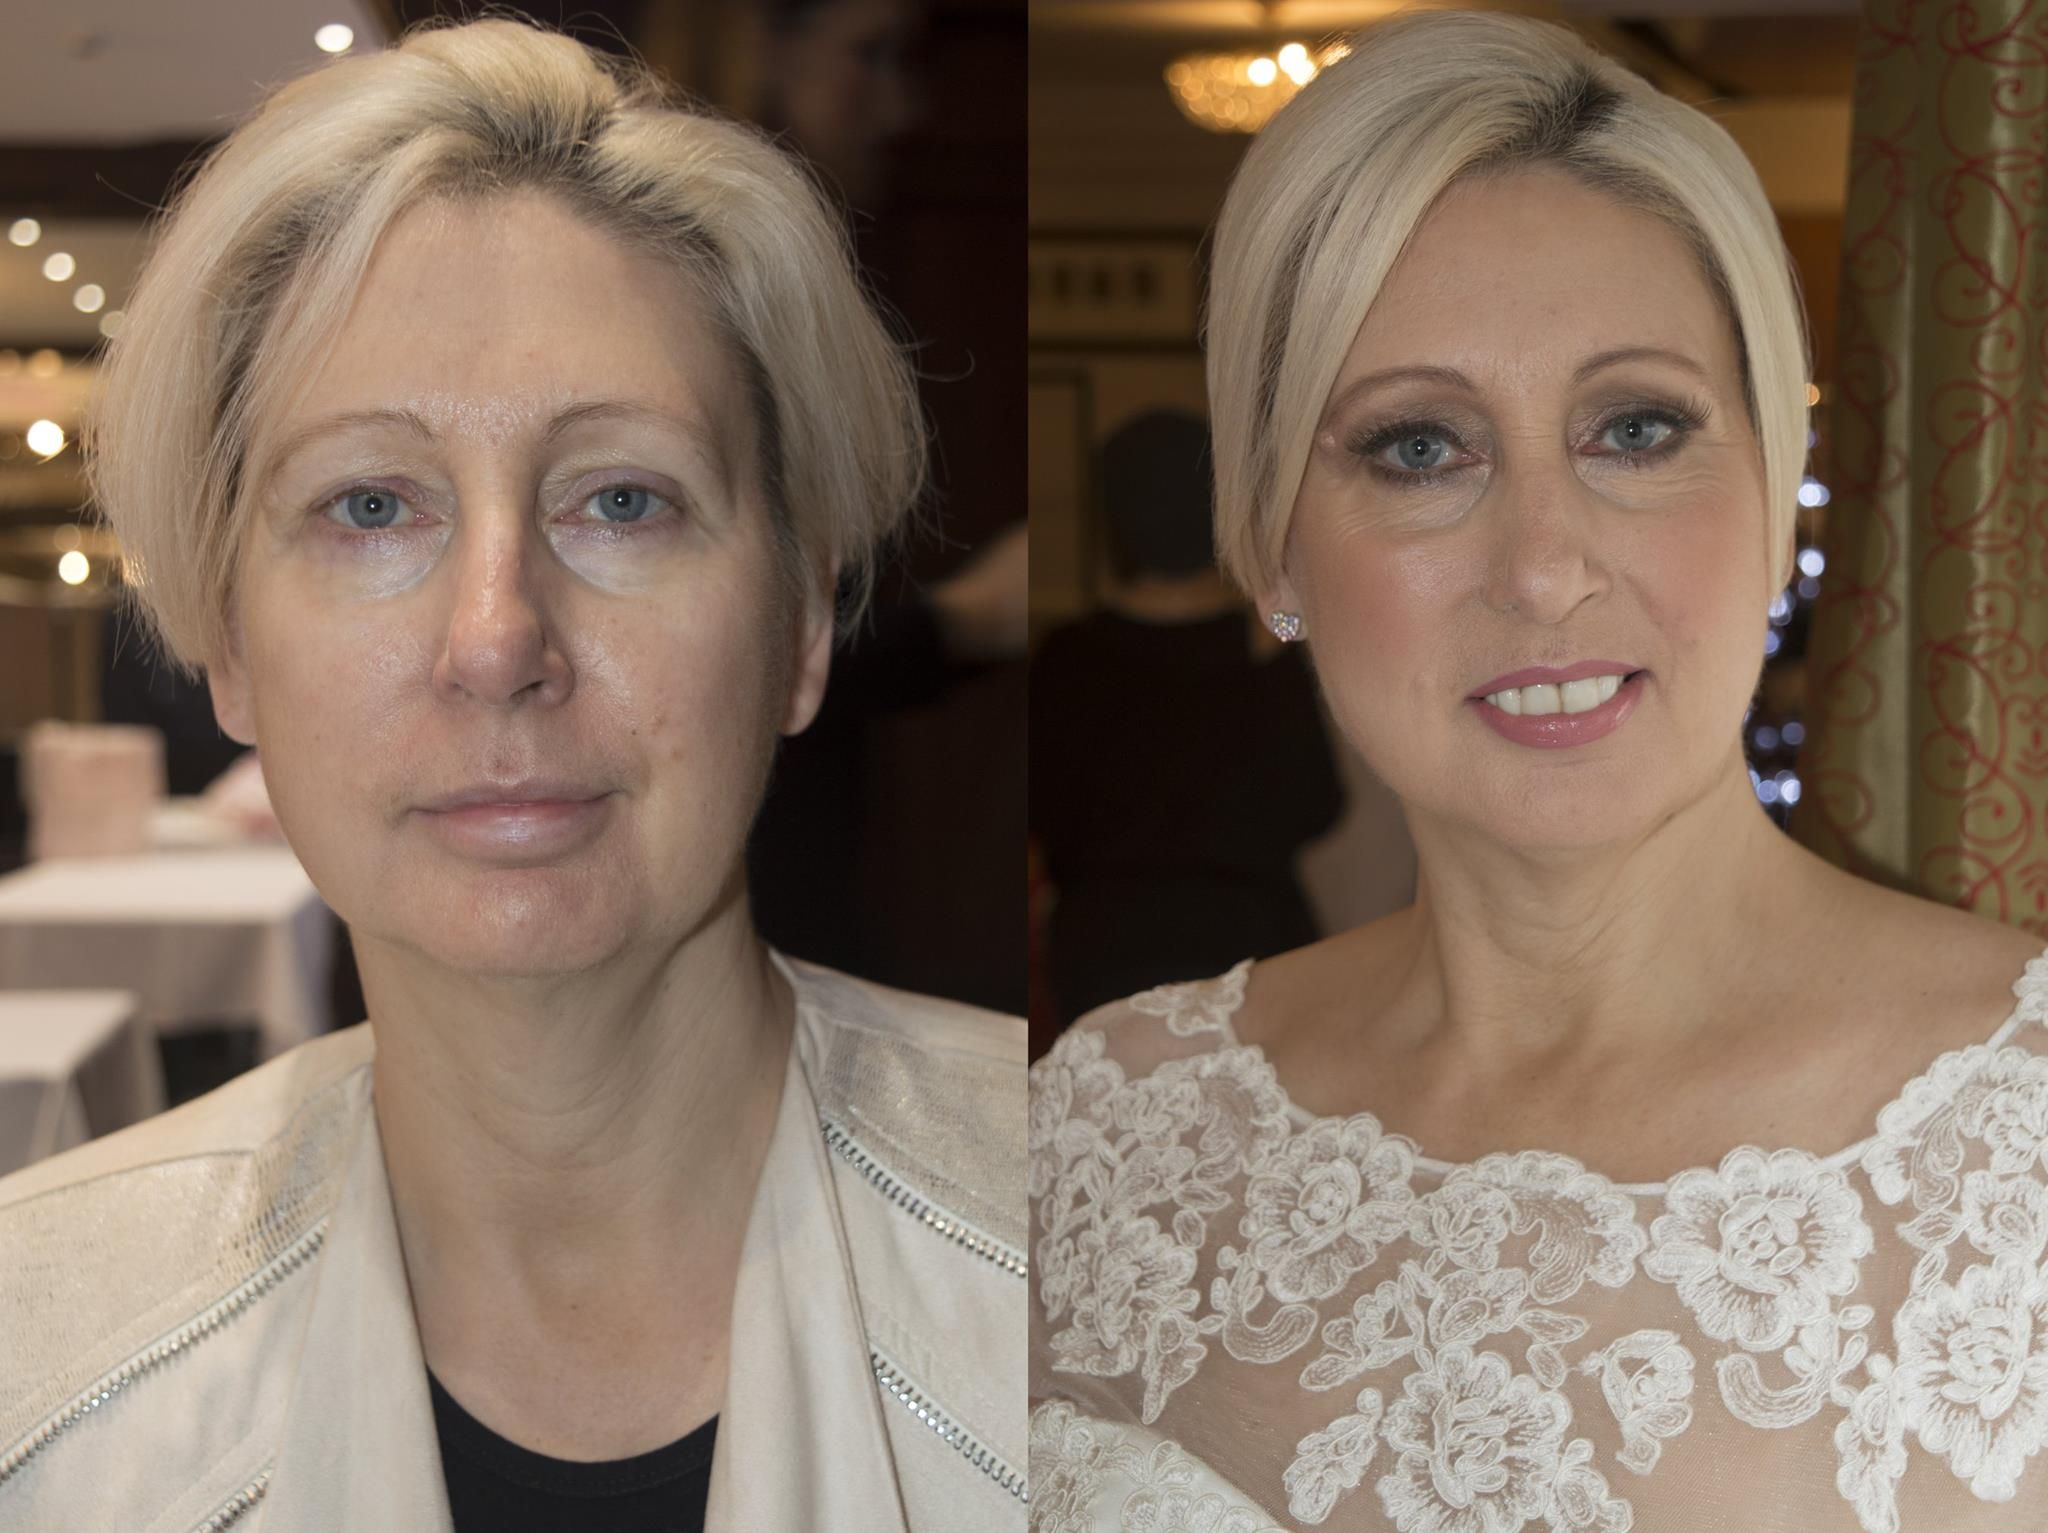 Corinne's before and after using Airbase Airbrush Makeup